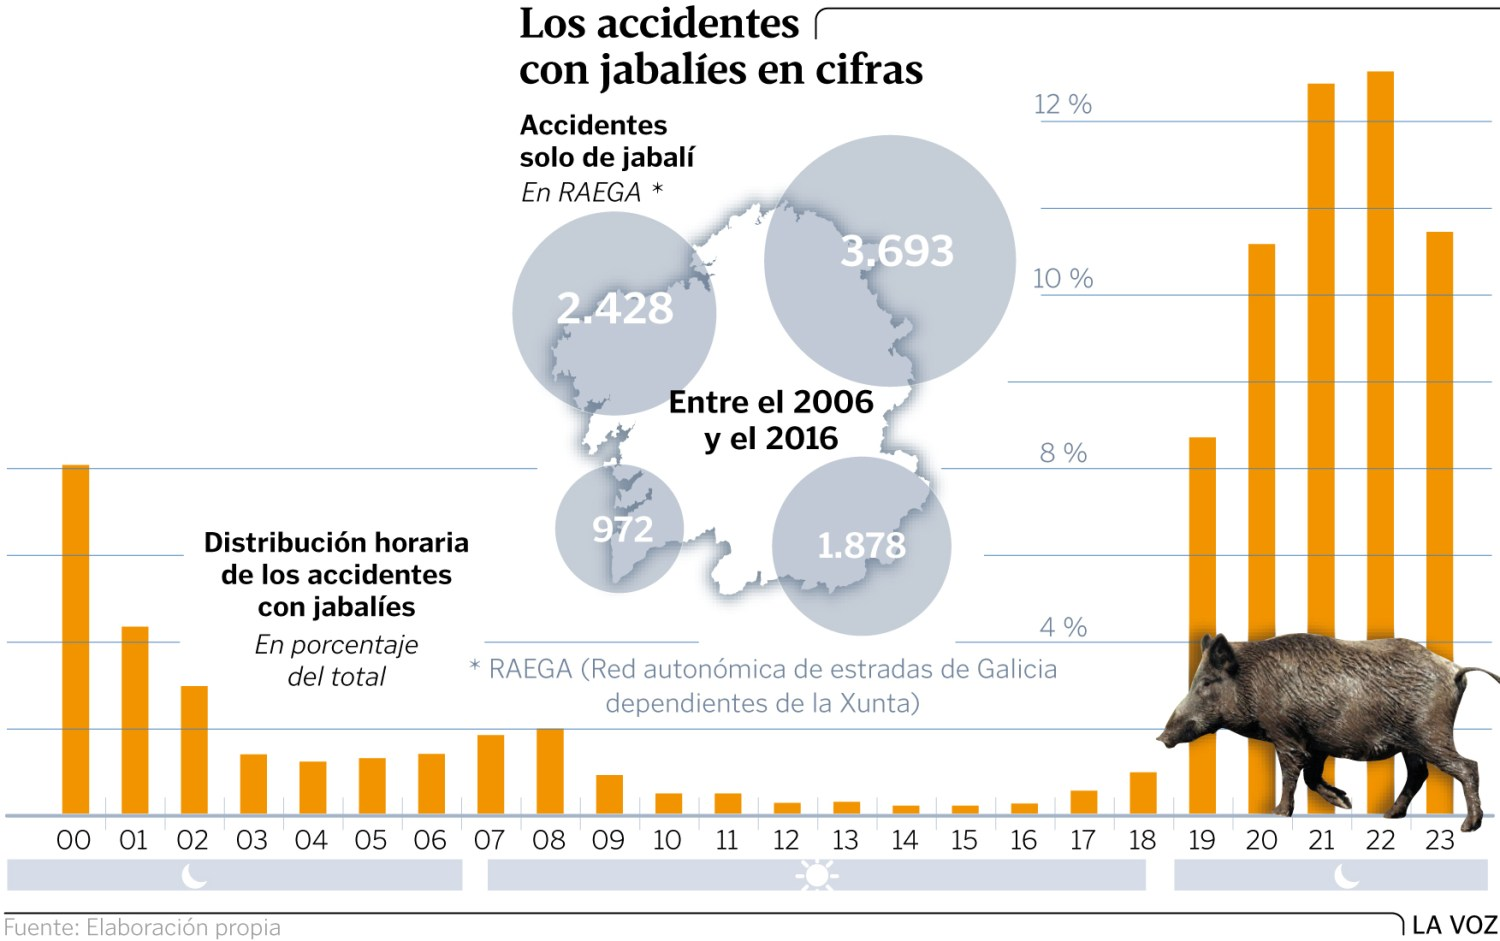 jabalies_accidentes